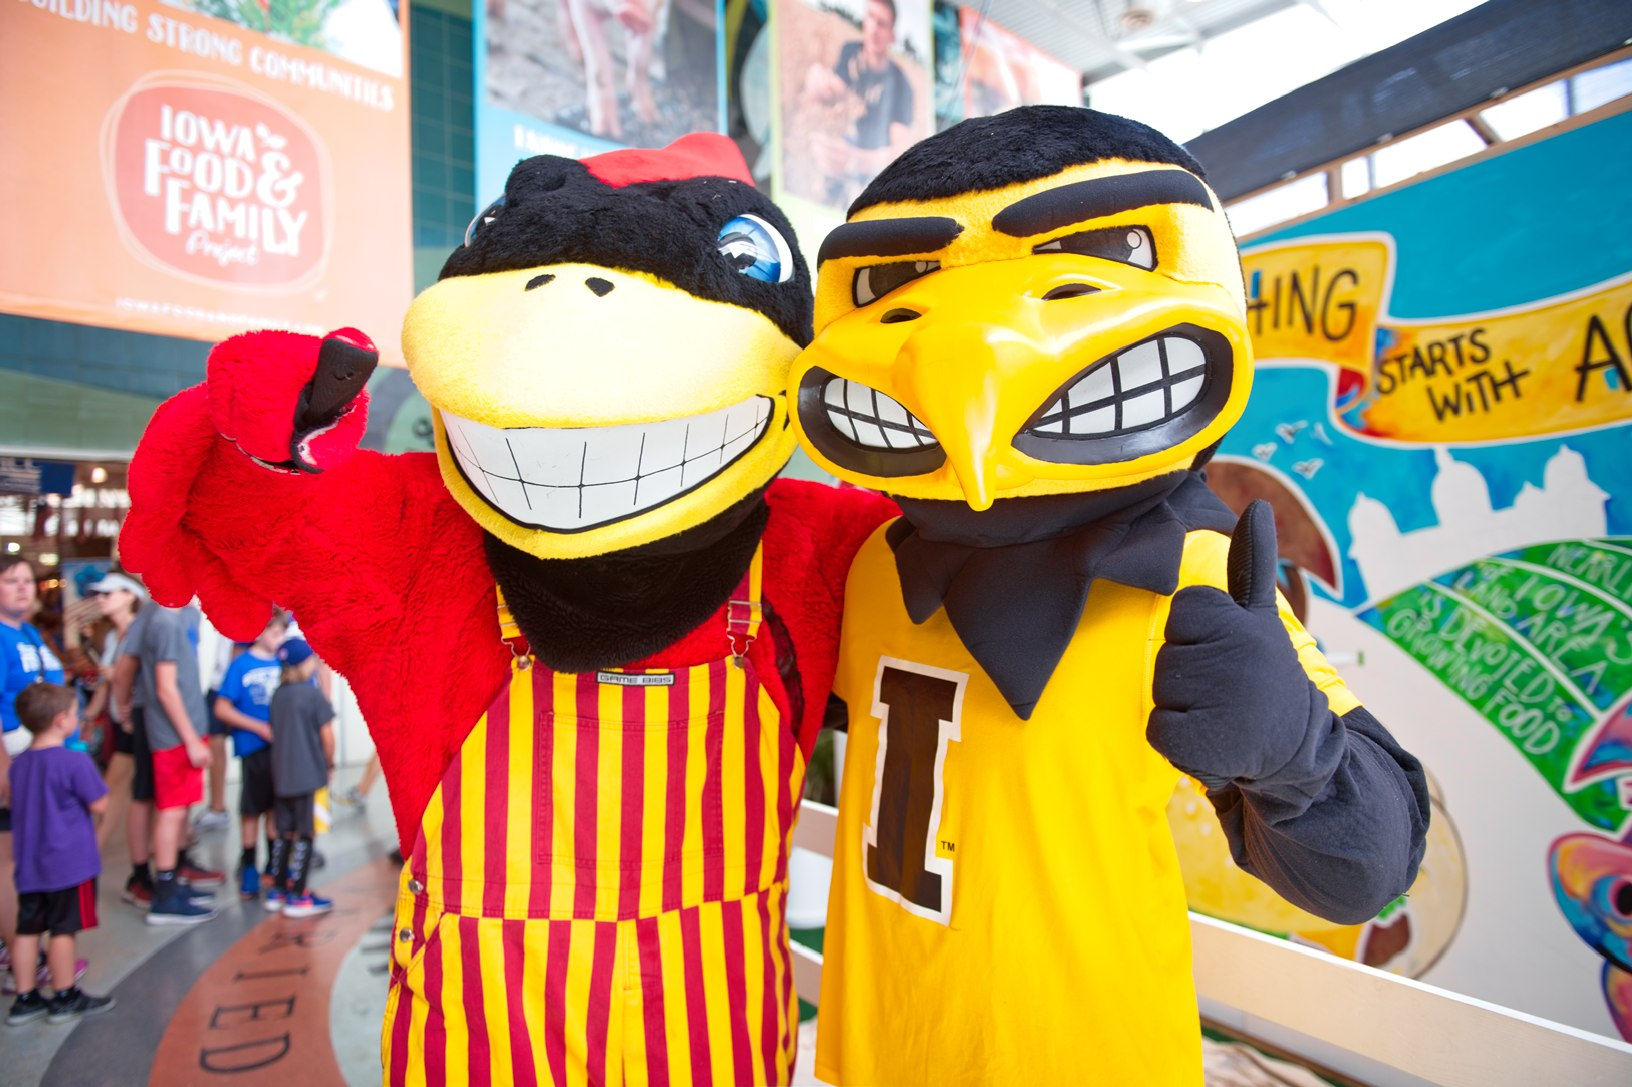 Cy and Herky spark up a fierce rivalry and share their artistic skills to help complete the 'Everything Starts with Agriculture' mural. Photo credit: Joseph L. Murphy/Iowa Soybean Association